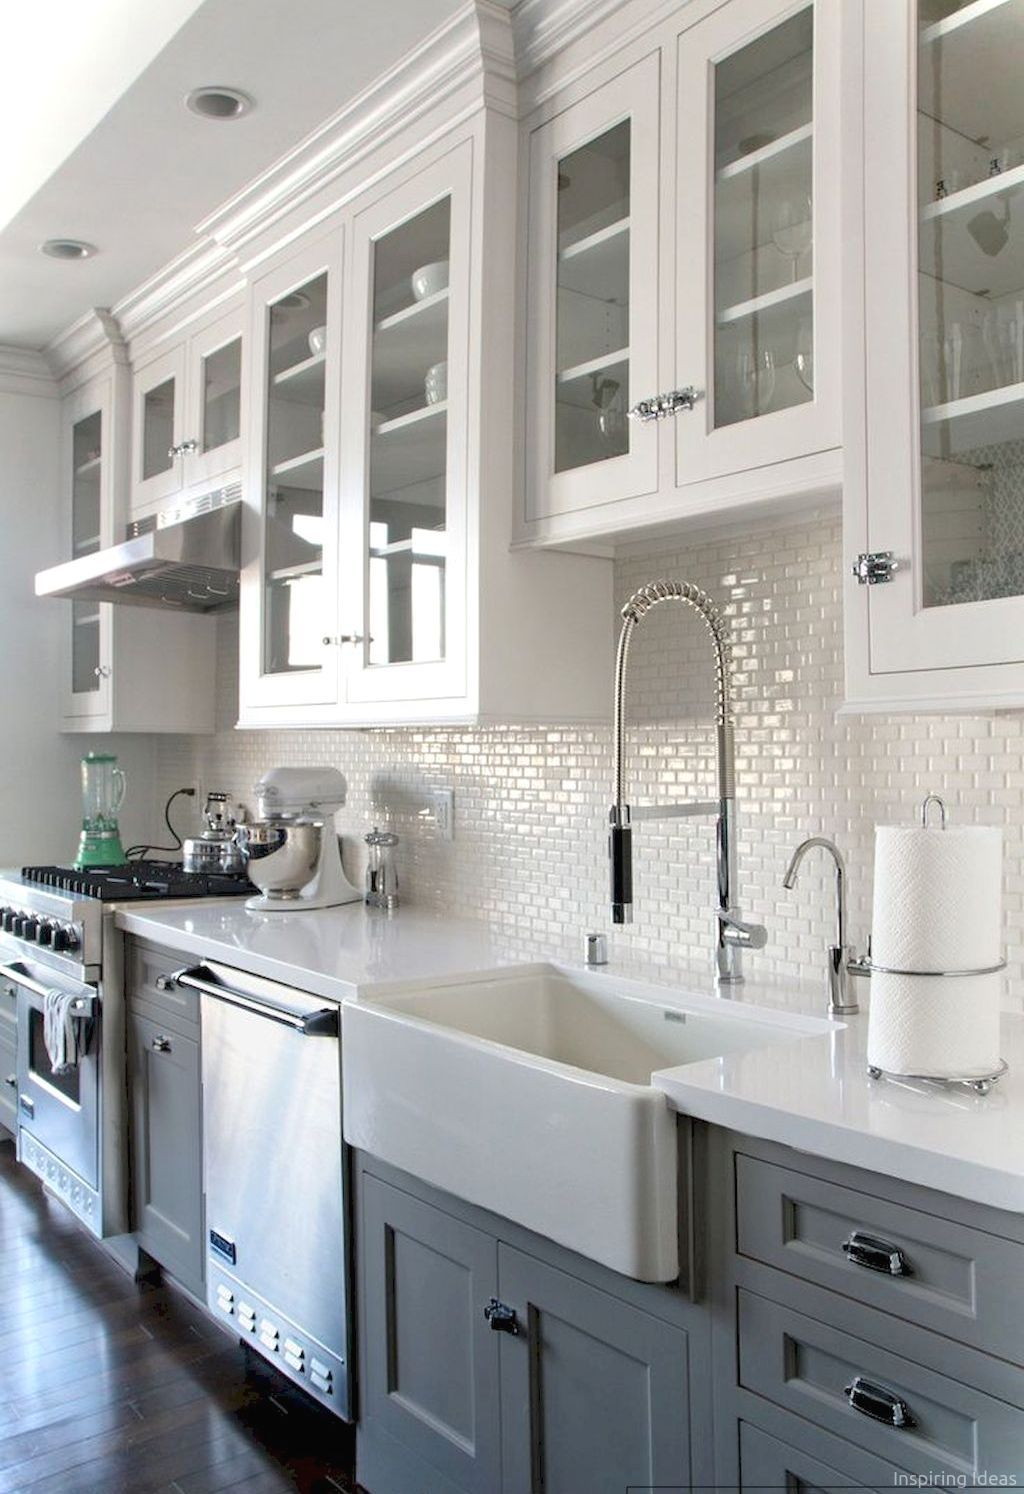 Best Kitchen Gallery: 80 Awesome Modern Farmhouse Kitchen Cabi S Ideas Farmhouse of Two Tone Kitchen Cabinet Color Ideas on rachelxblog.com